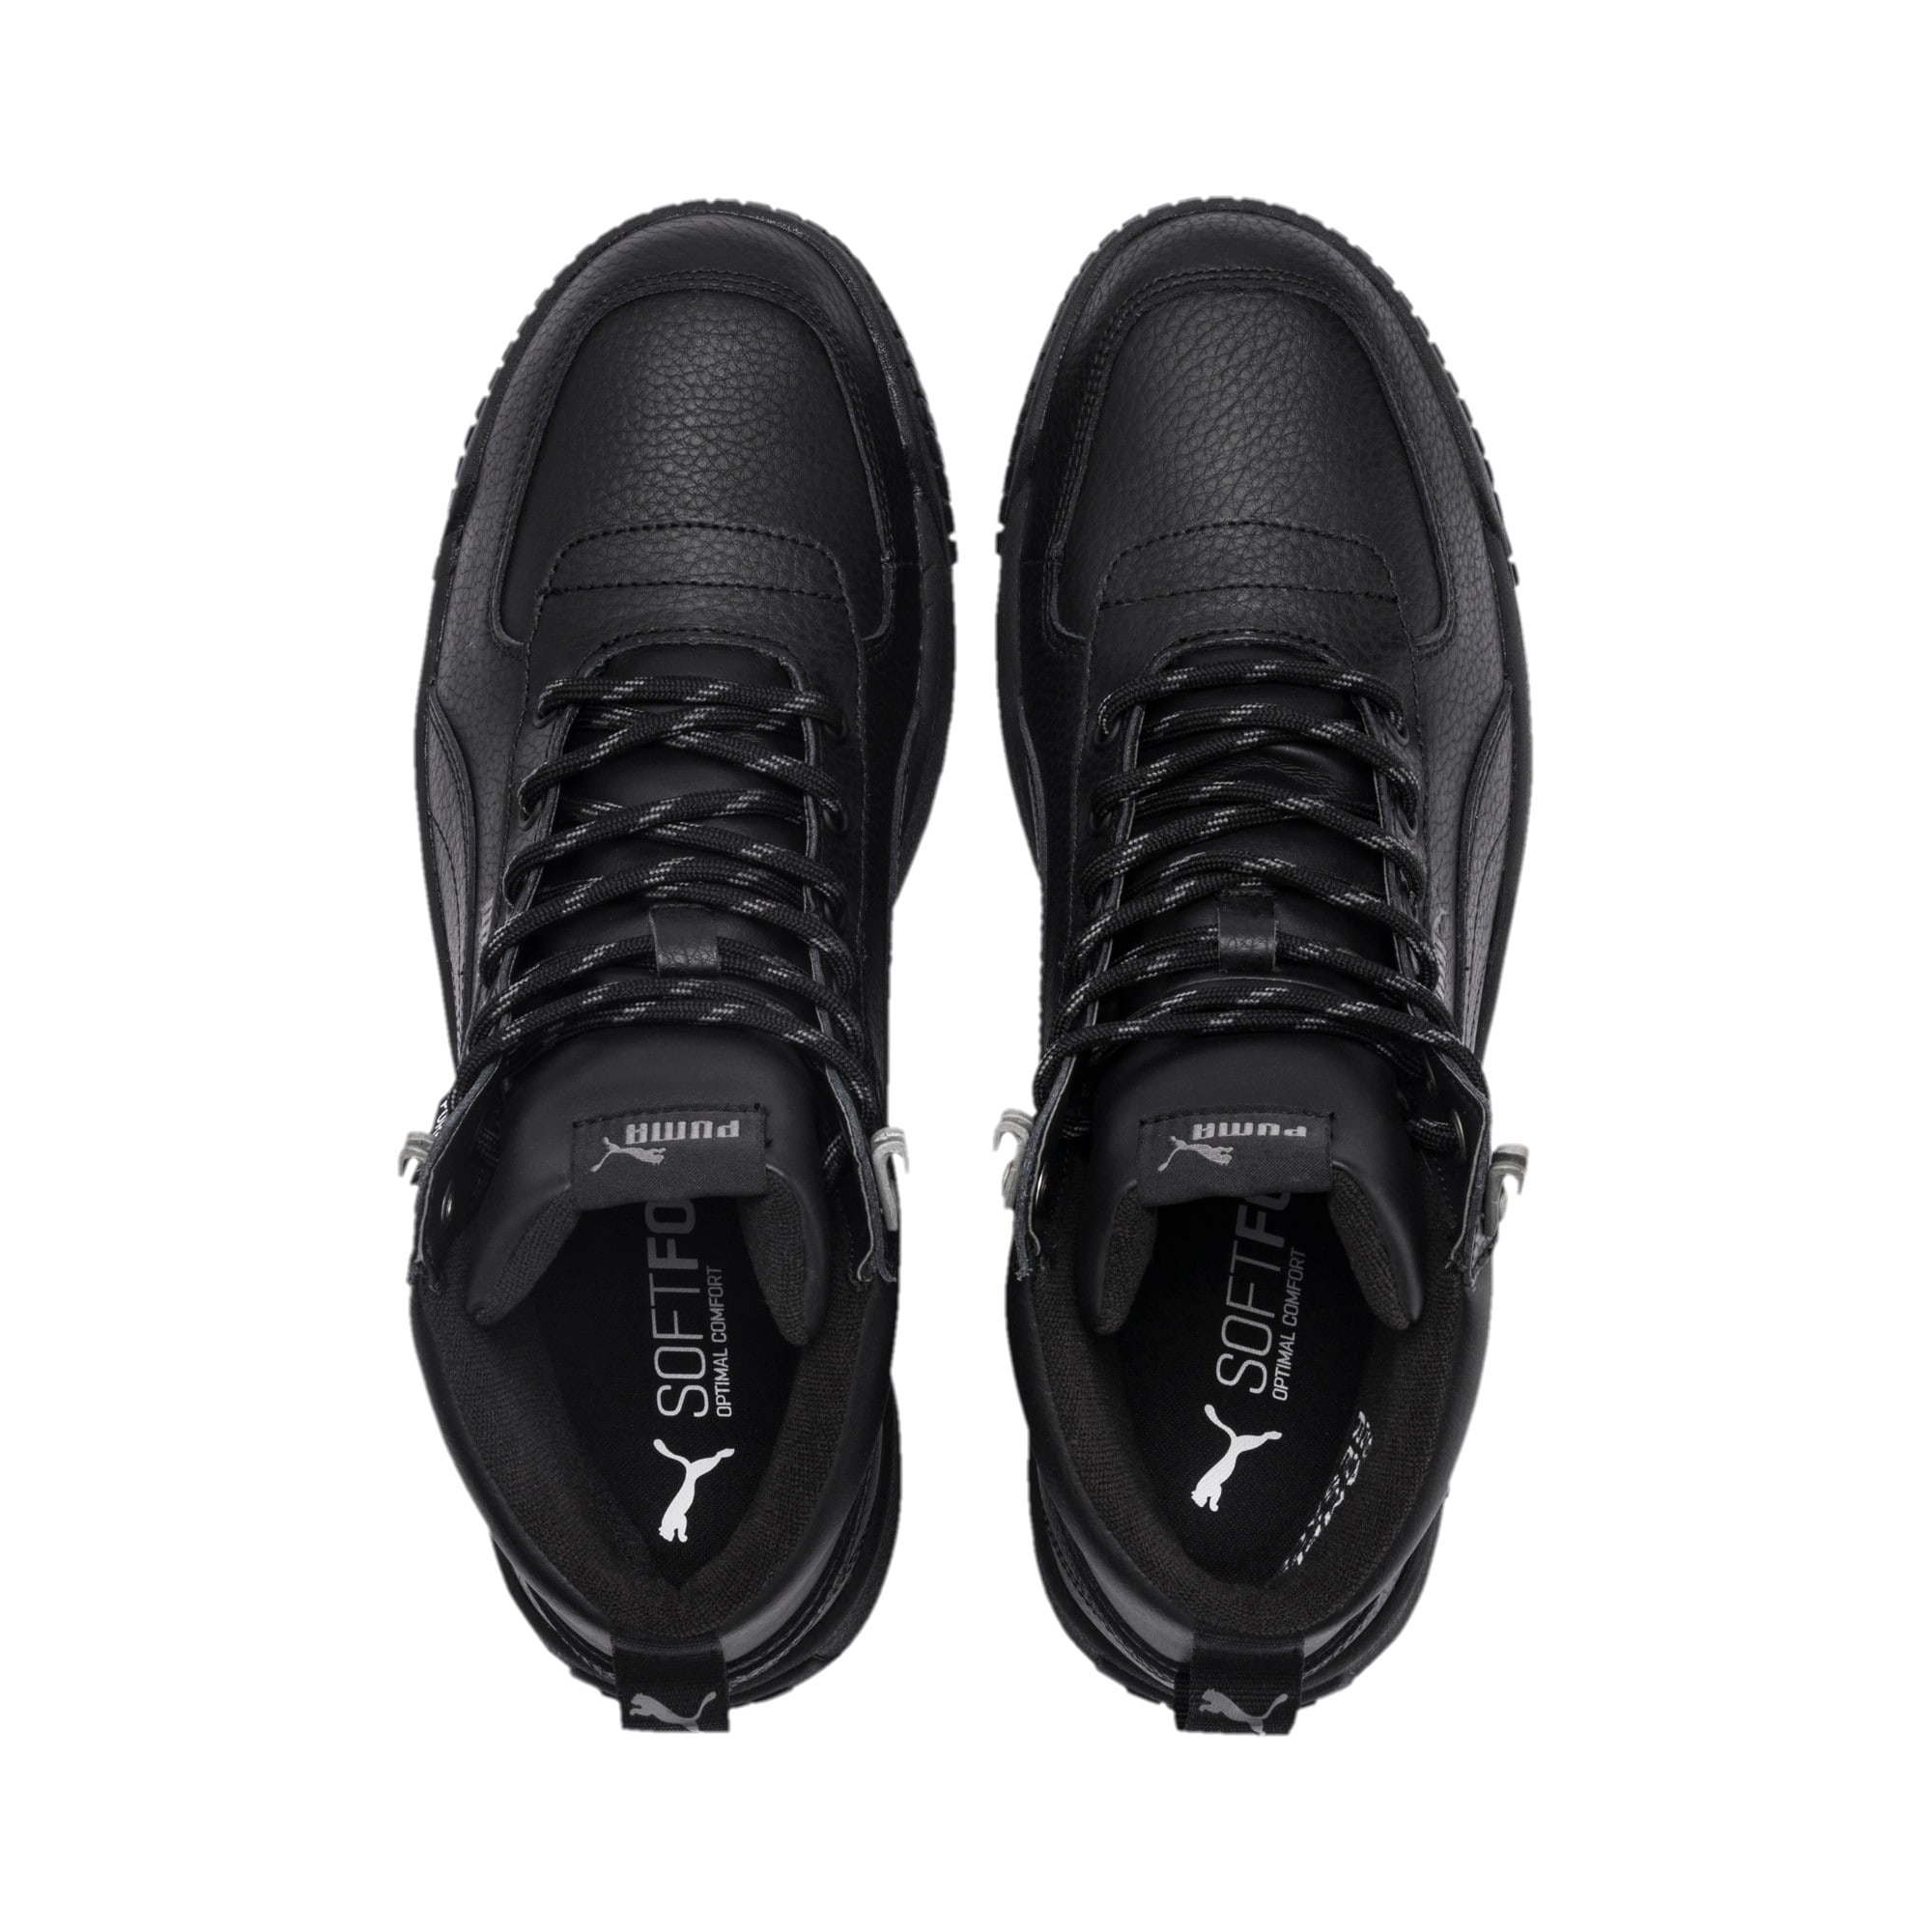 Thumbnail 7 of Tarrenz SB PURE-TEX Trainers, Puma Black-Puma Black, medium